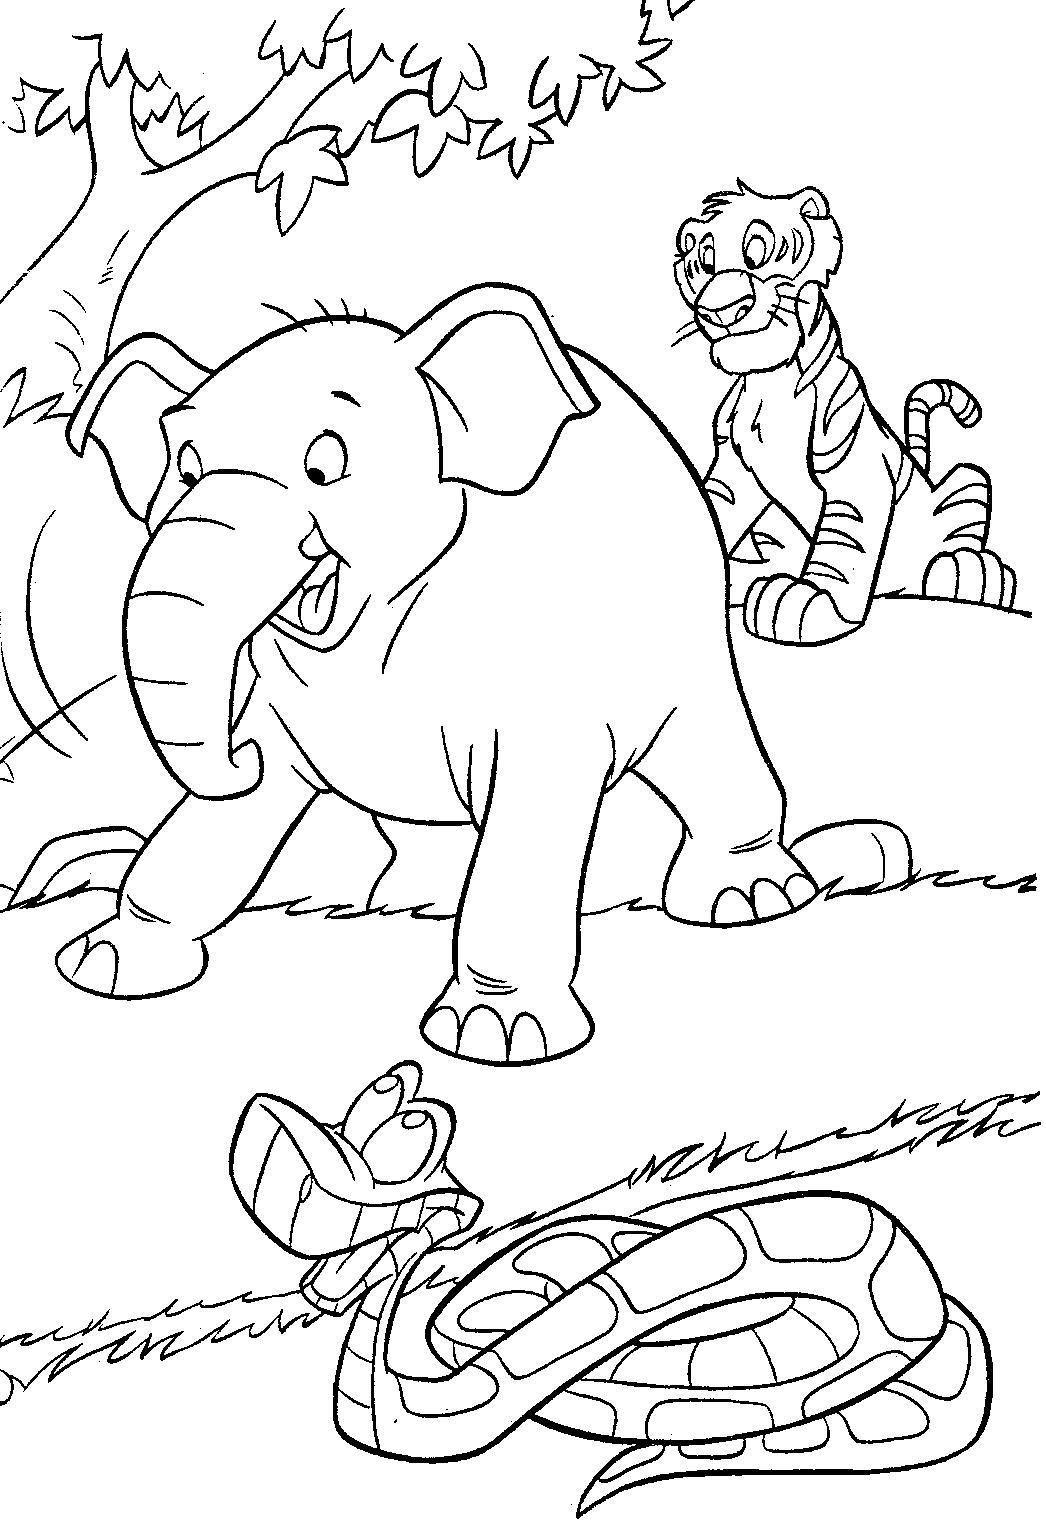 coloring sheet coloring pictures for kids free printable tangled coloring pages for kids cool2bkids pictures coloring coloring kids sheet for